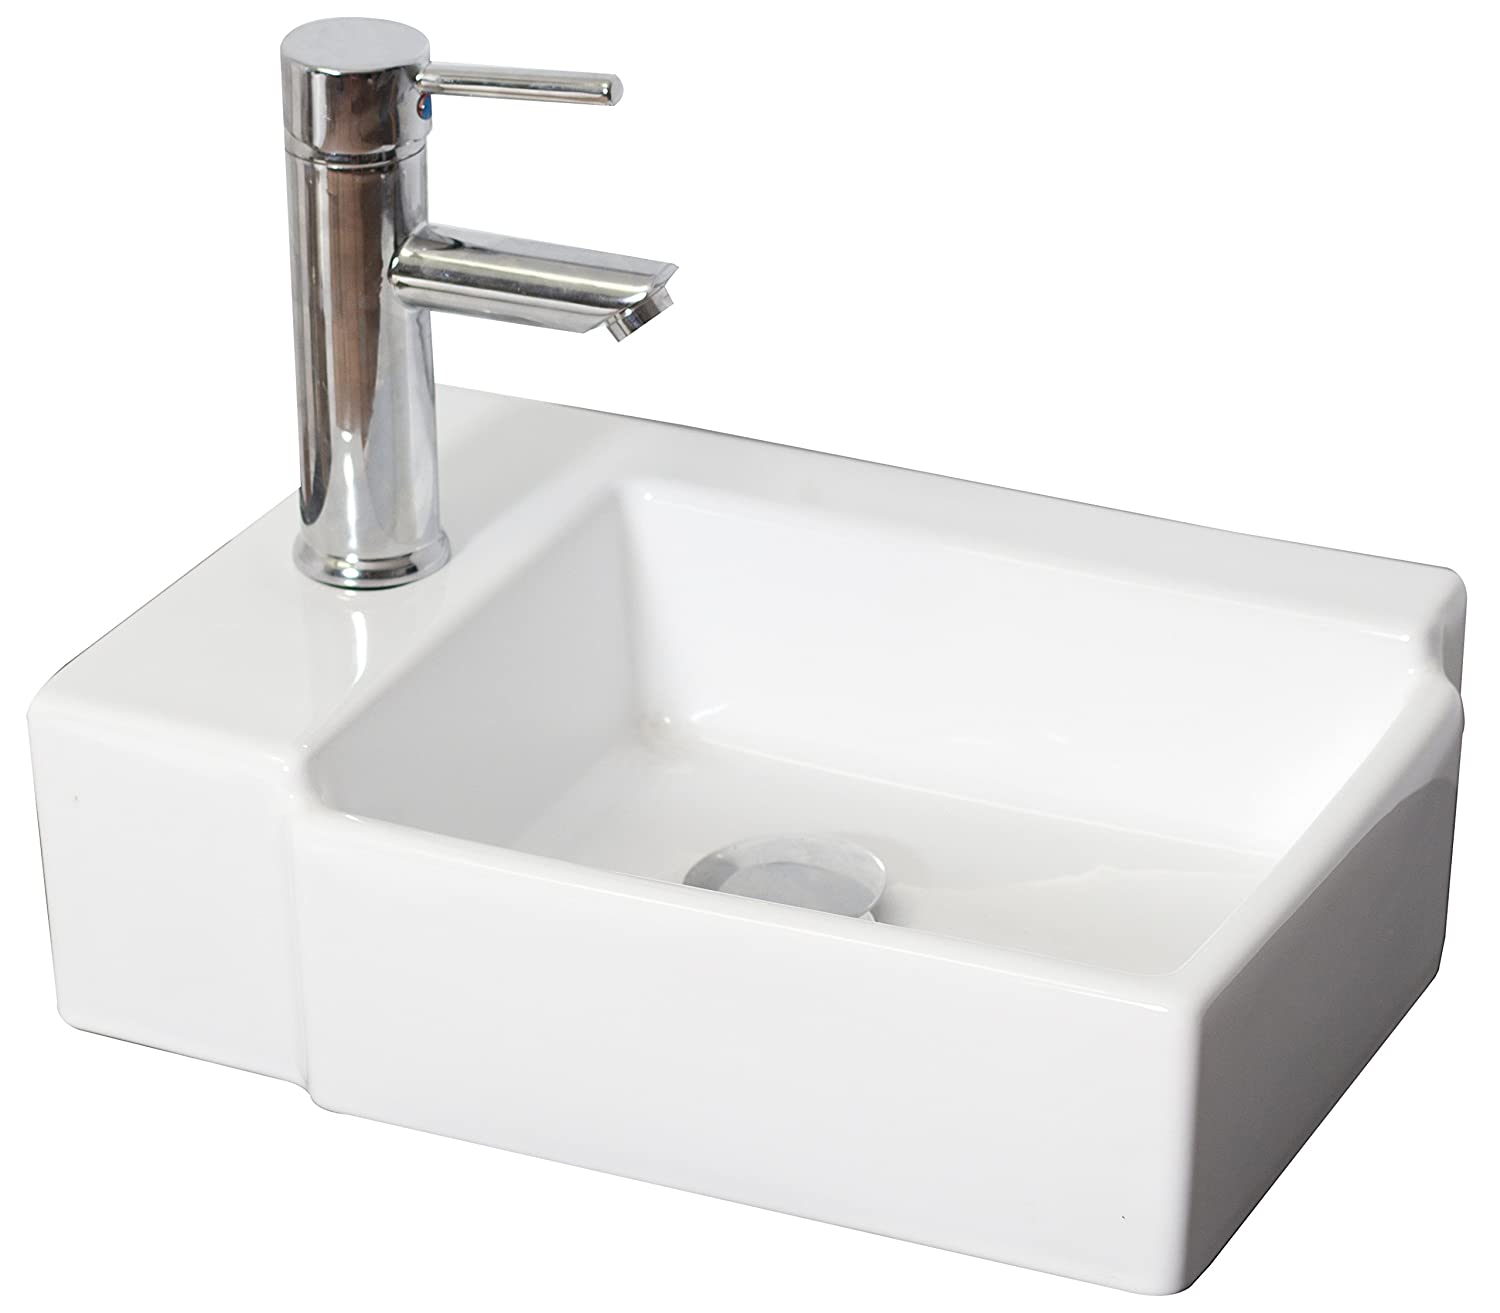 American Imaginations AI-4-1301 Above Counter Rectangle Vessel for Single Hole Faucet, 16.25-Inch x 12-Inch, White IMG Imports Inc.